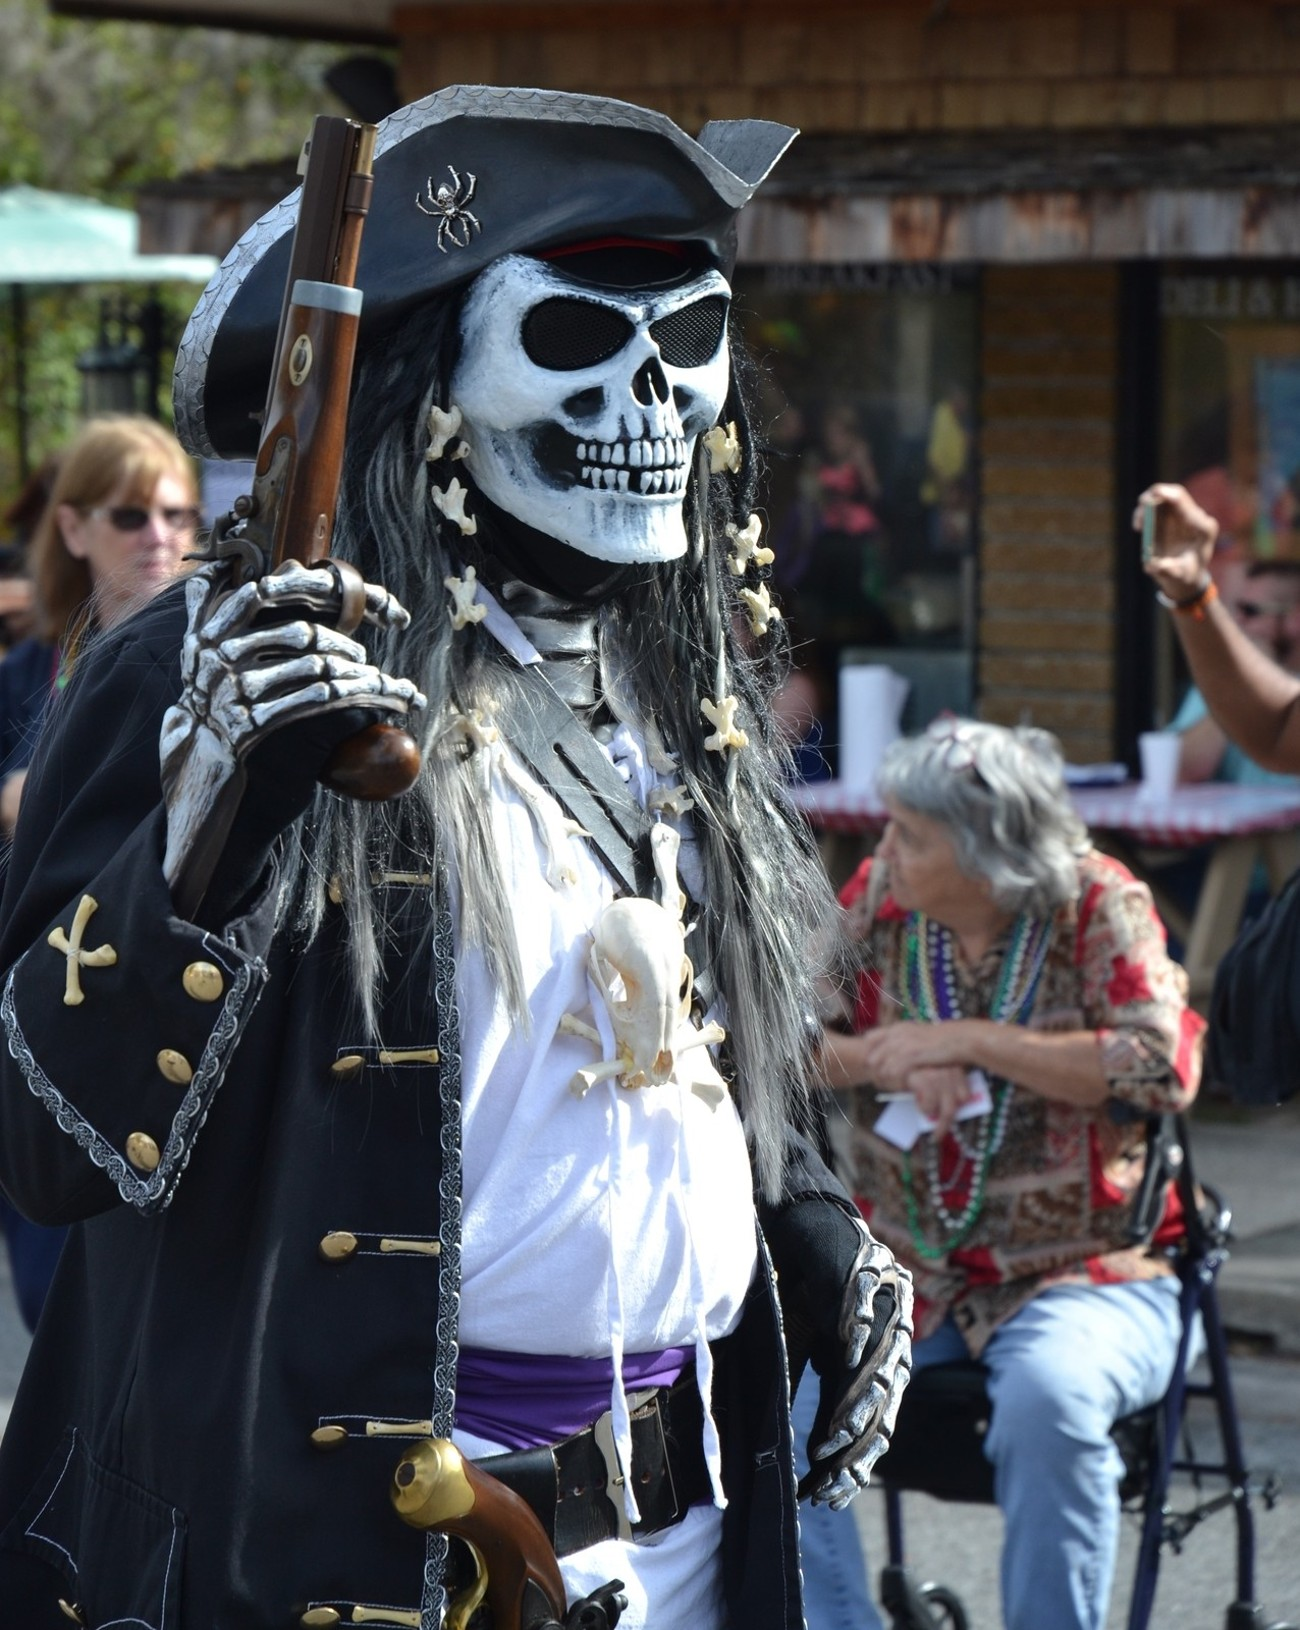 One of the actors who dress as pirates taking part in the St Marys GA. Mardi Gras Parade and festival  this past Saturday.